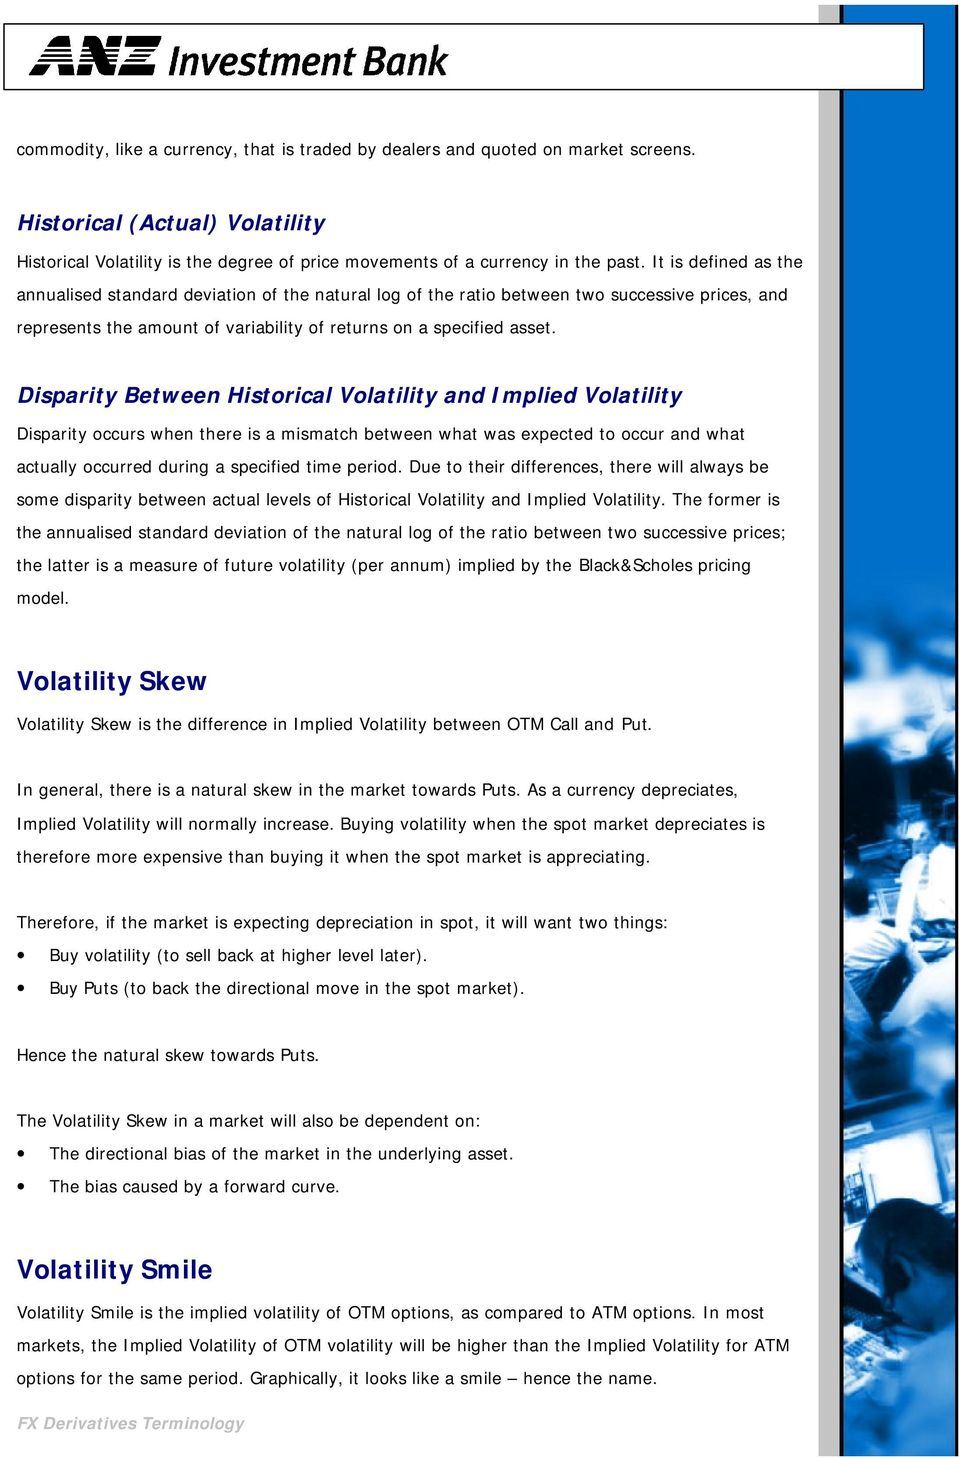 Disparity Between Historical Volatility and Implied Volatility Disparity occurs when there is a mismatch between what was expected to occur and what actually occurred during a specified time period.